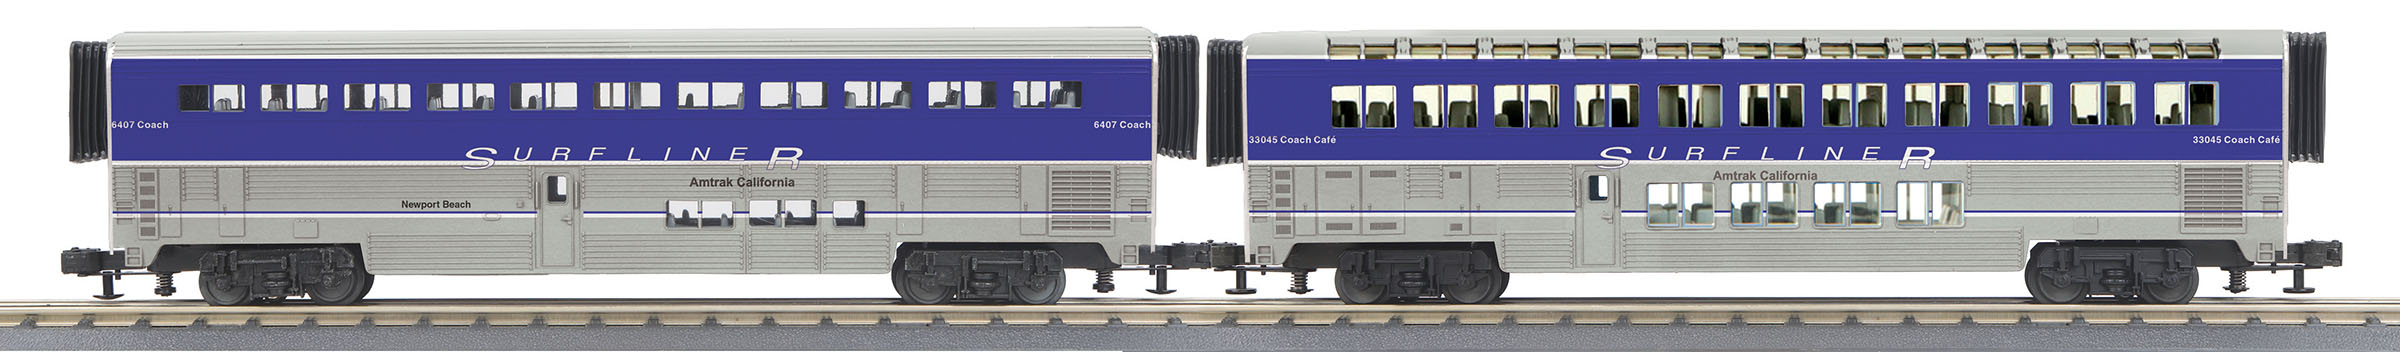 MTH 306533 O-31 SuperLiner Set Amtrak/Lounge/Surfliner #6461